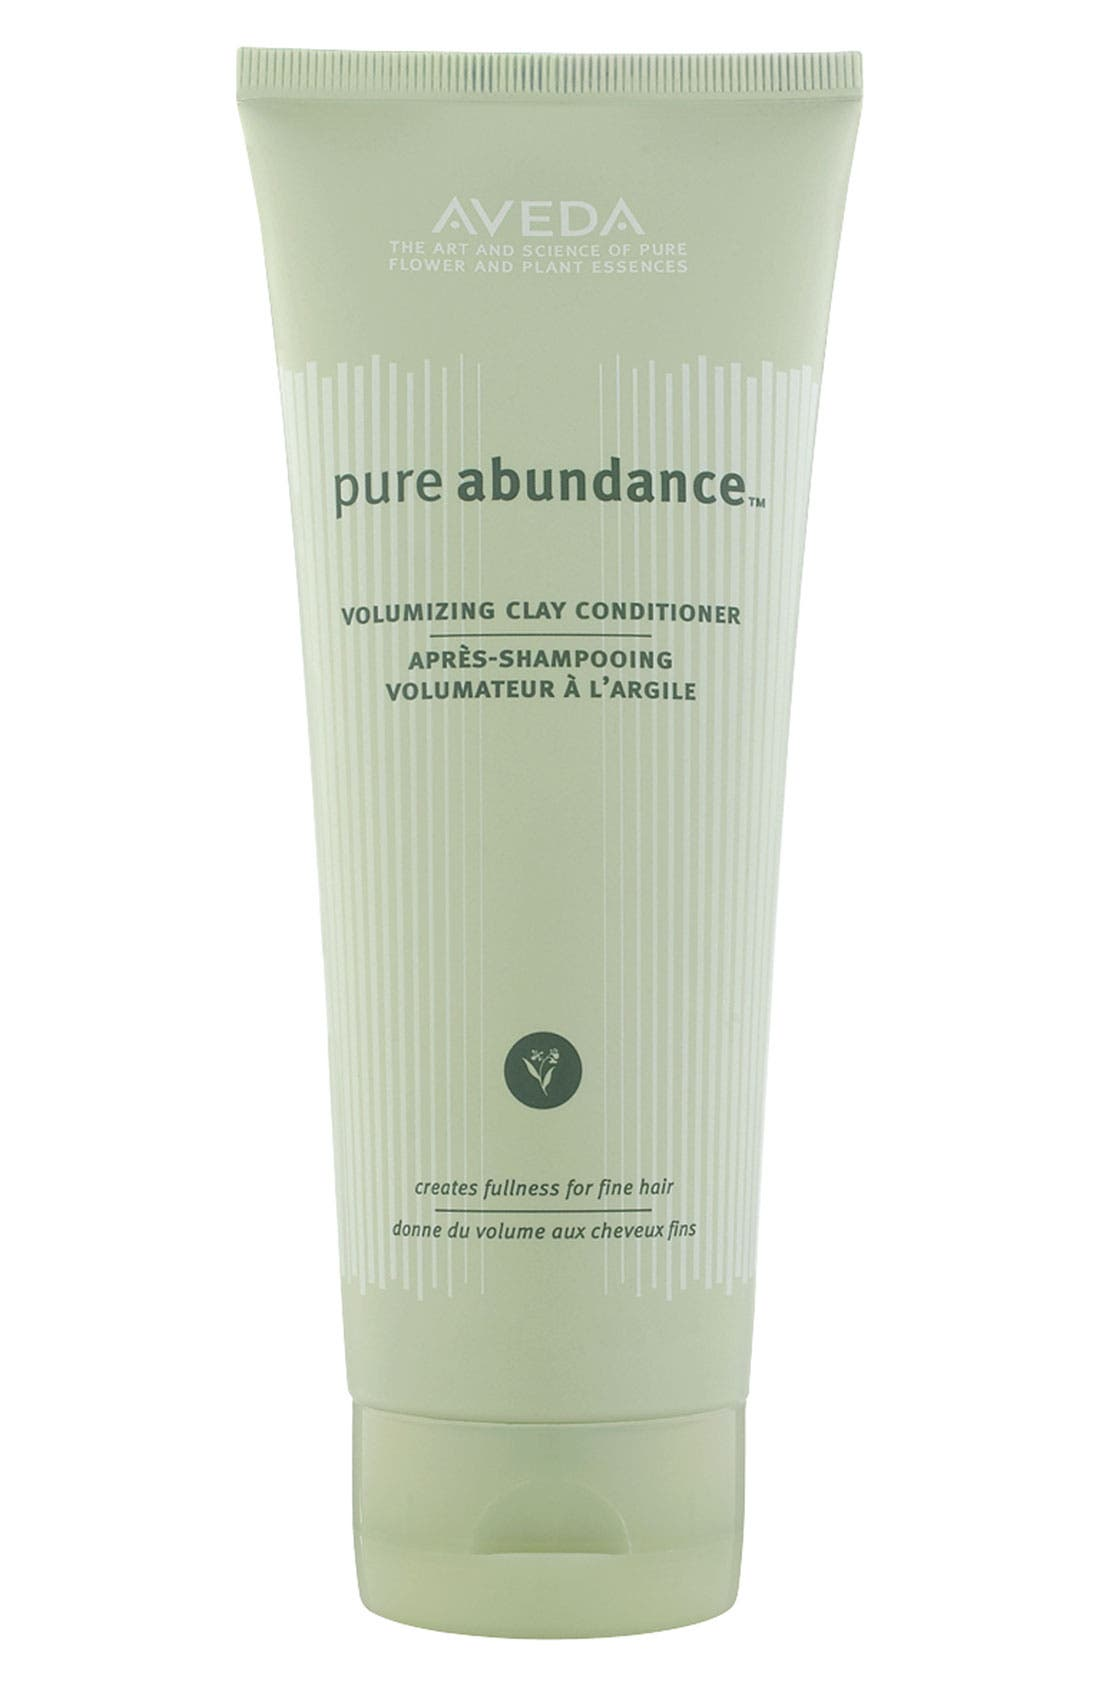 Aveda 'pure abundance™' Volumizing Clay Conditioner